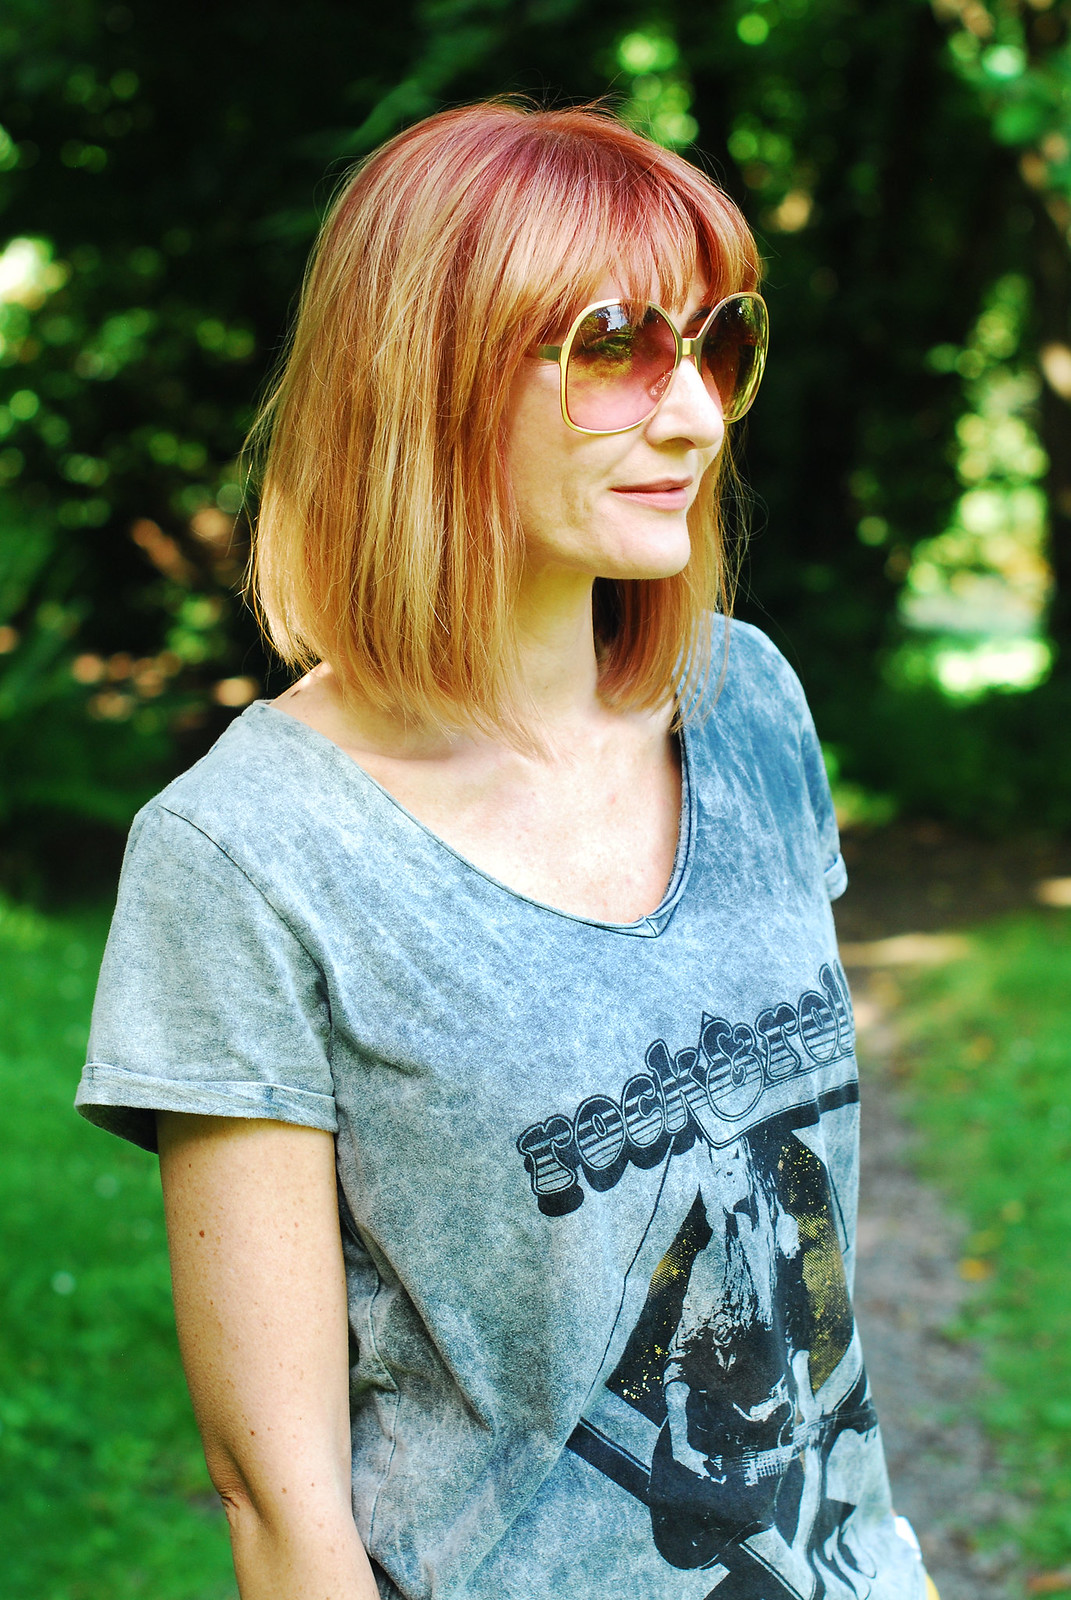 Dressed for a cool British summer: Grey rock t-shirt, oversized 70s sunglasses, red bobbed hair | Not Dressed As Lamb